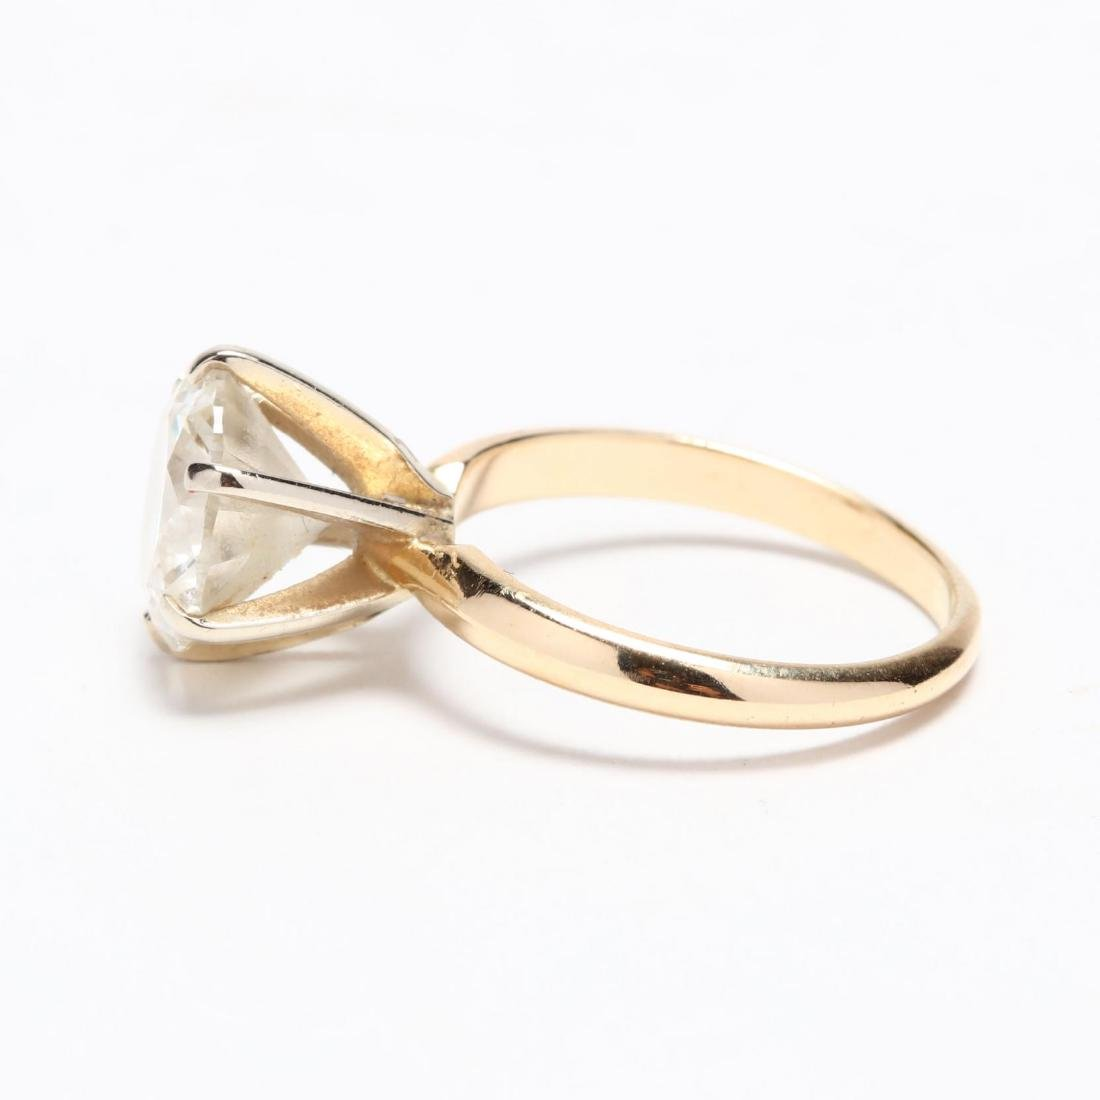 Unmounted Round Brilliant Cut Diamond and 14KT Gold - 7